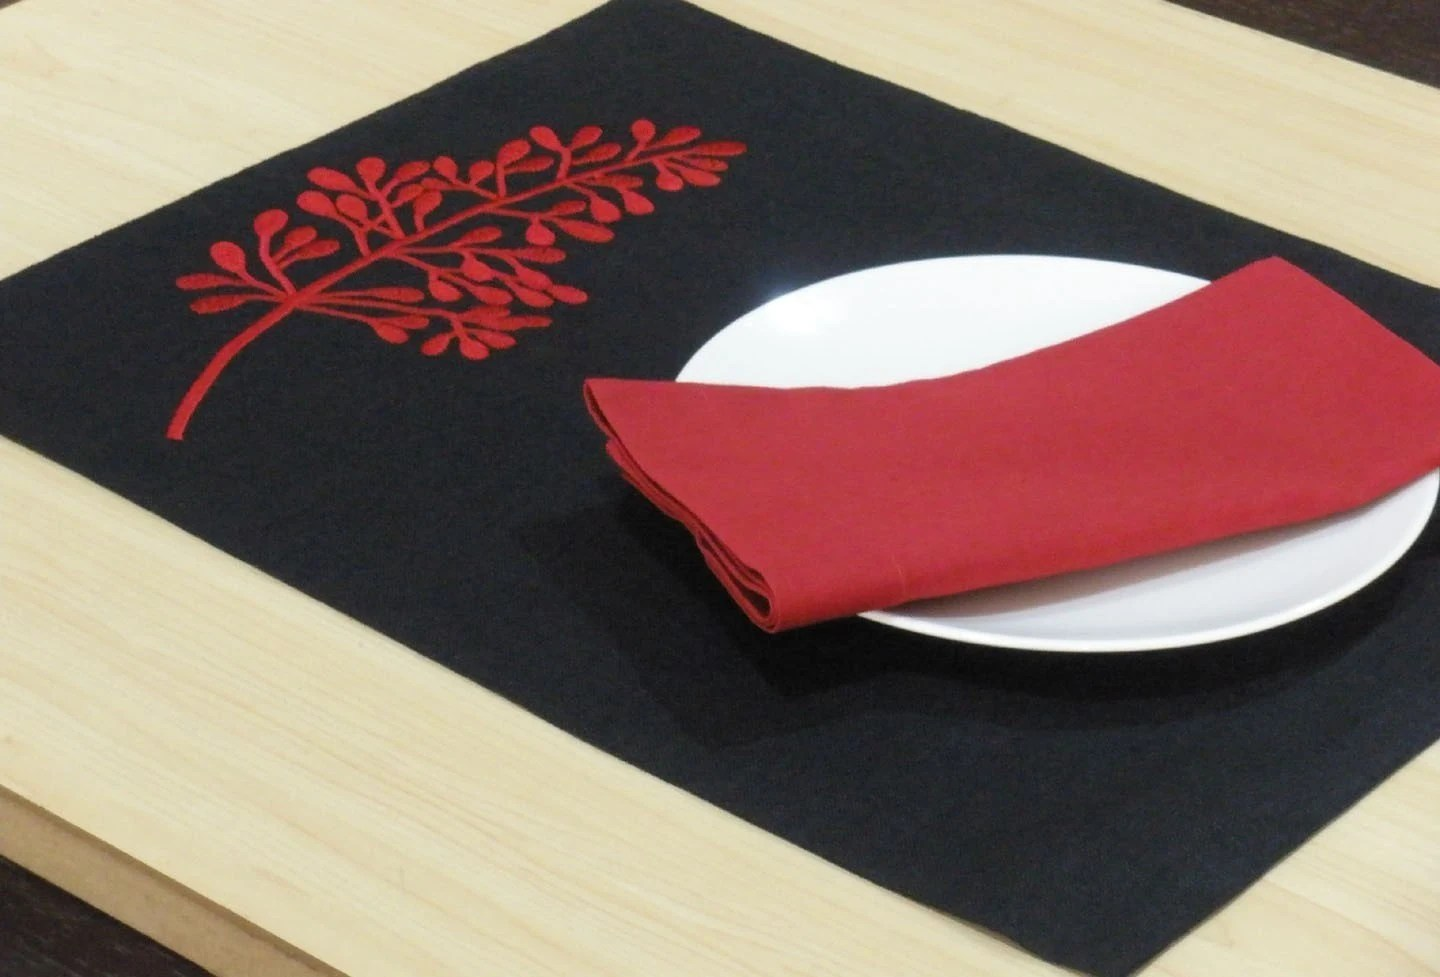 Red Fern Placemats, Placemats Set of 4, Embroidered Placemats, Red Fern on Black Linen Placemats, Holiday Placemats, Table Linen, Tabletop - KainKain